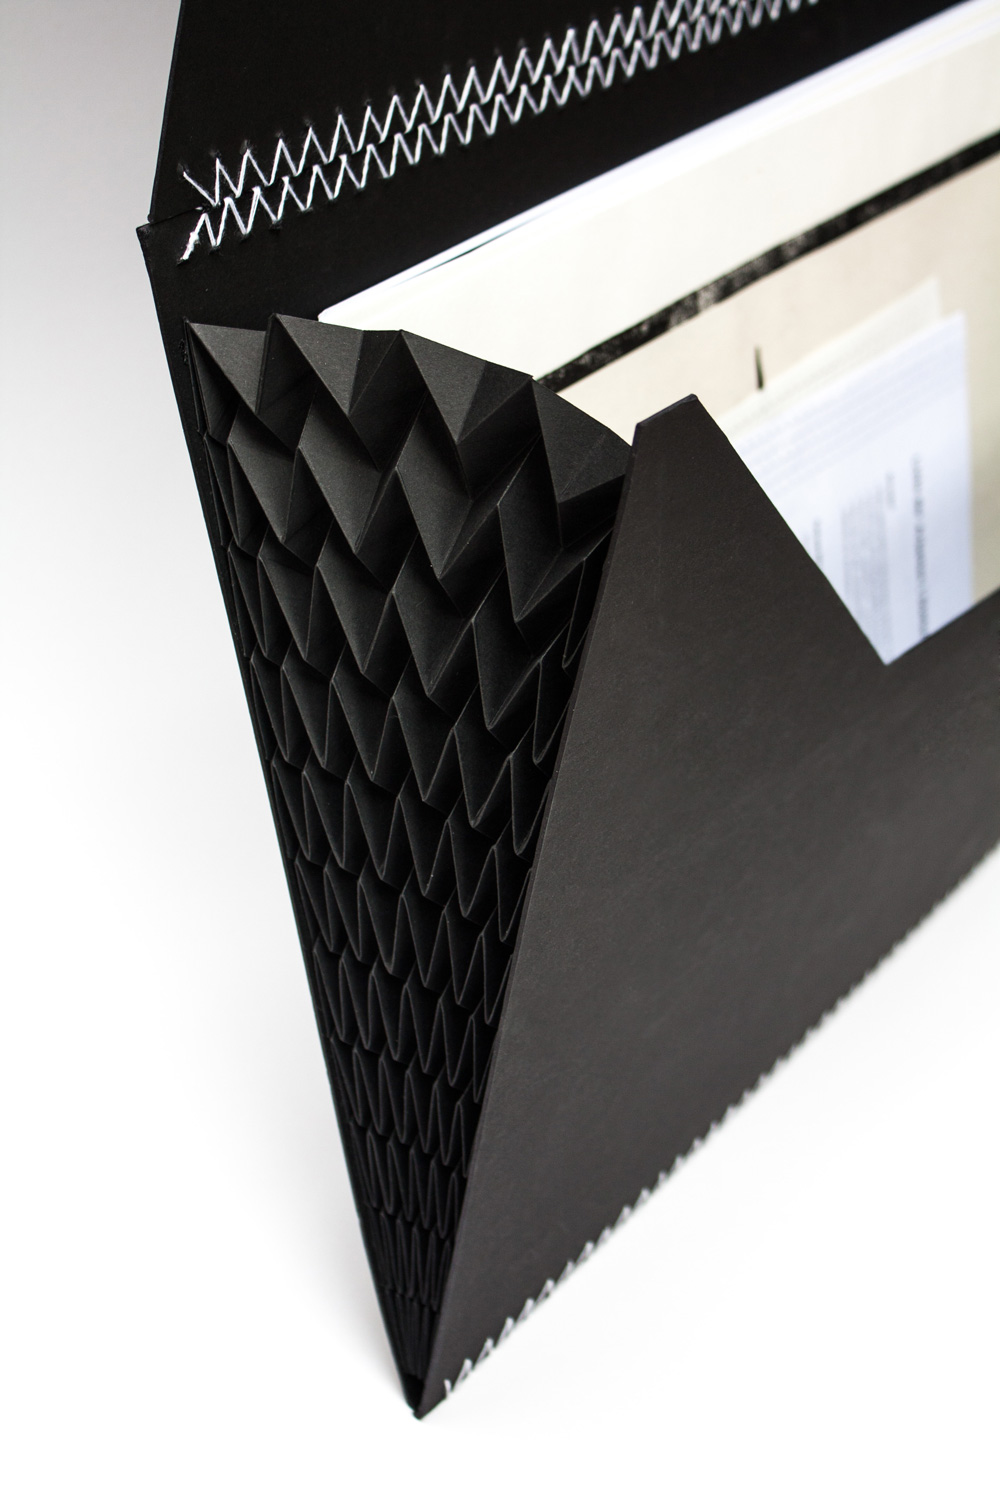 Application Folder In Black For Works In Size A3, Detail Of The Folding On The Side